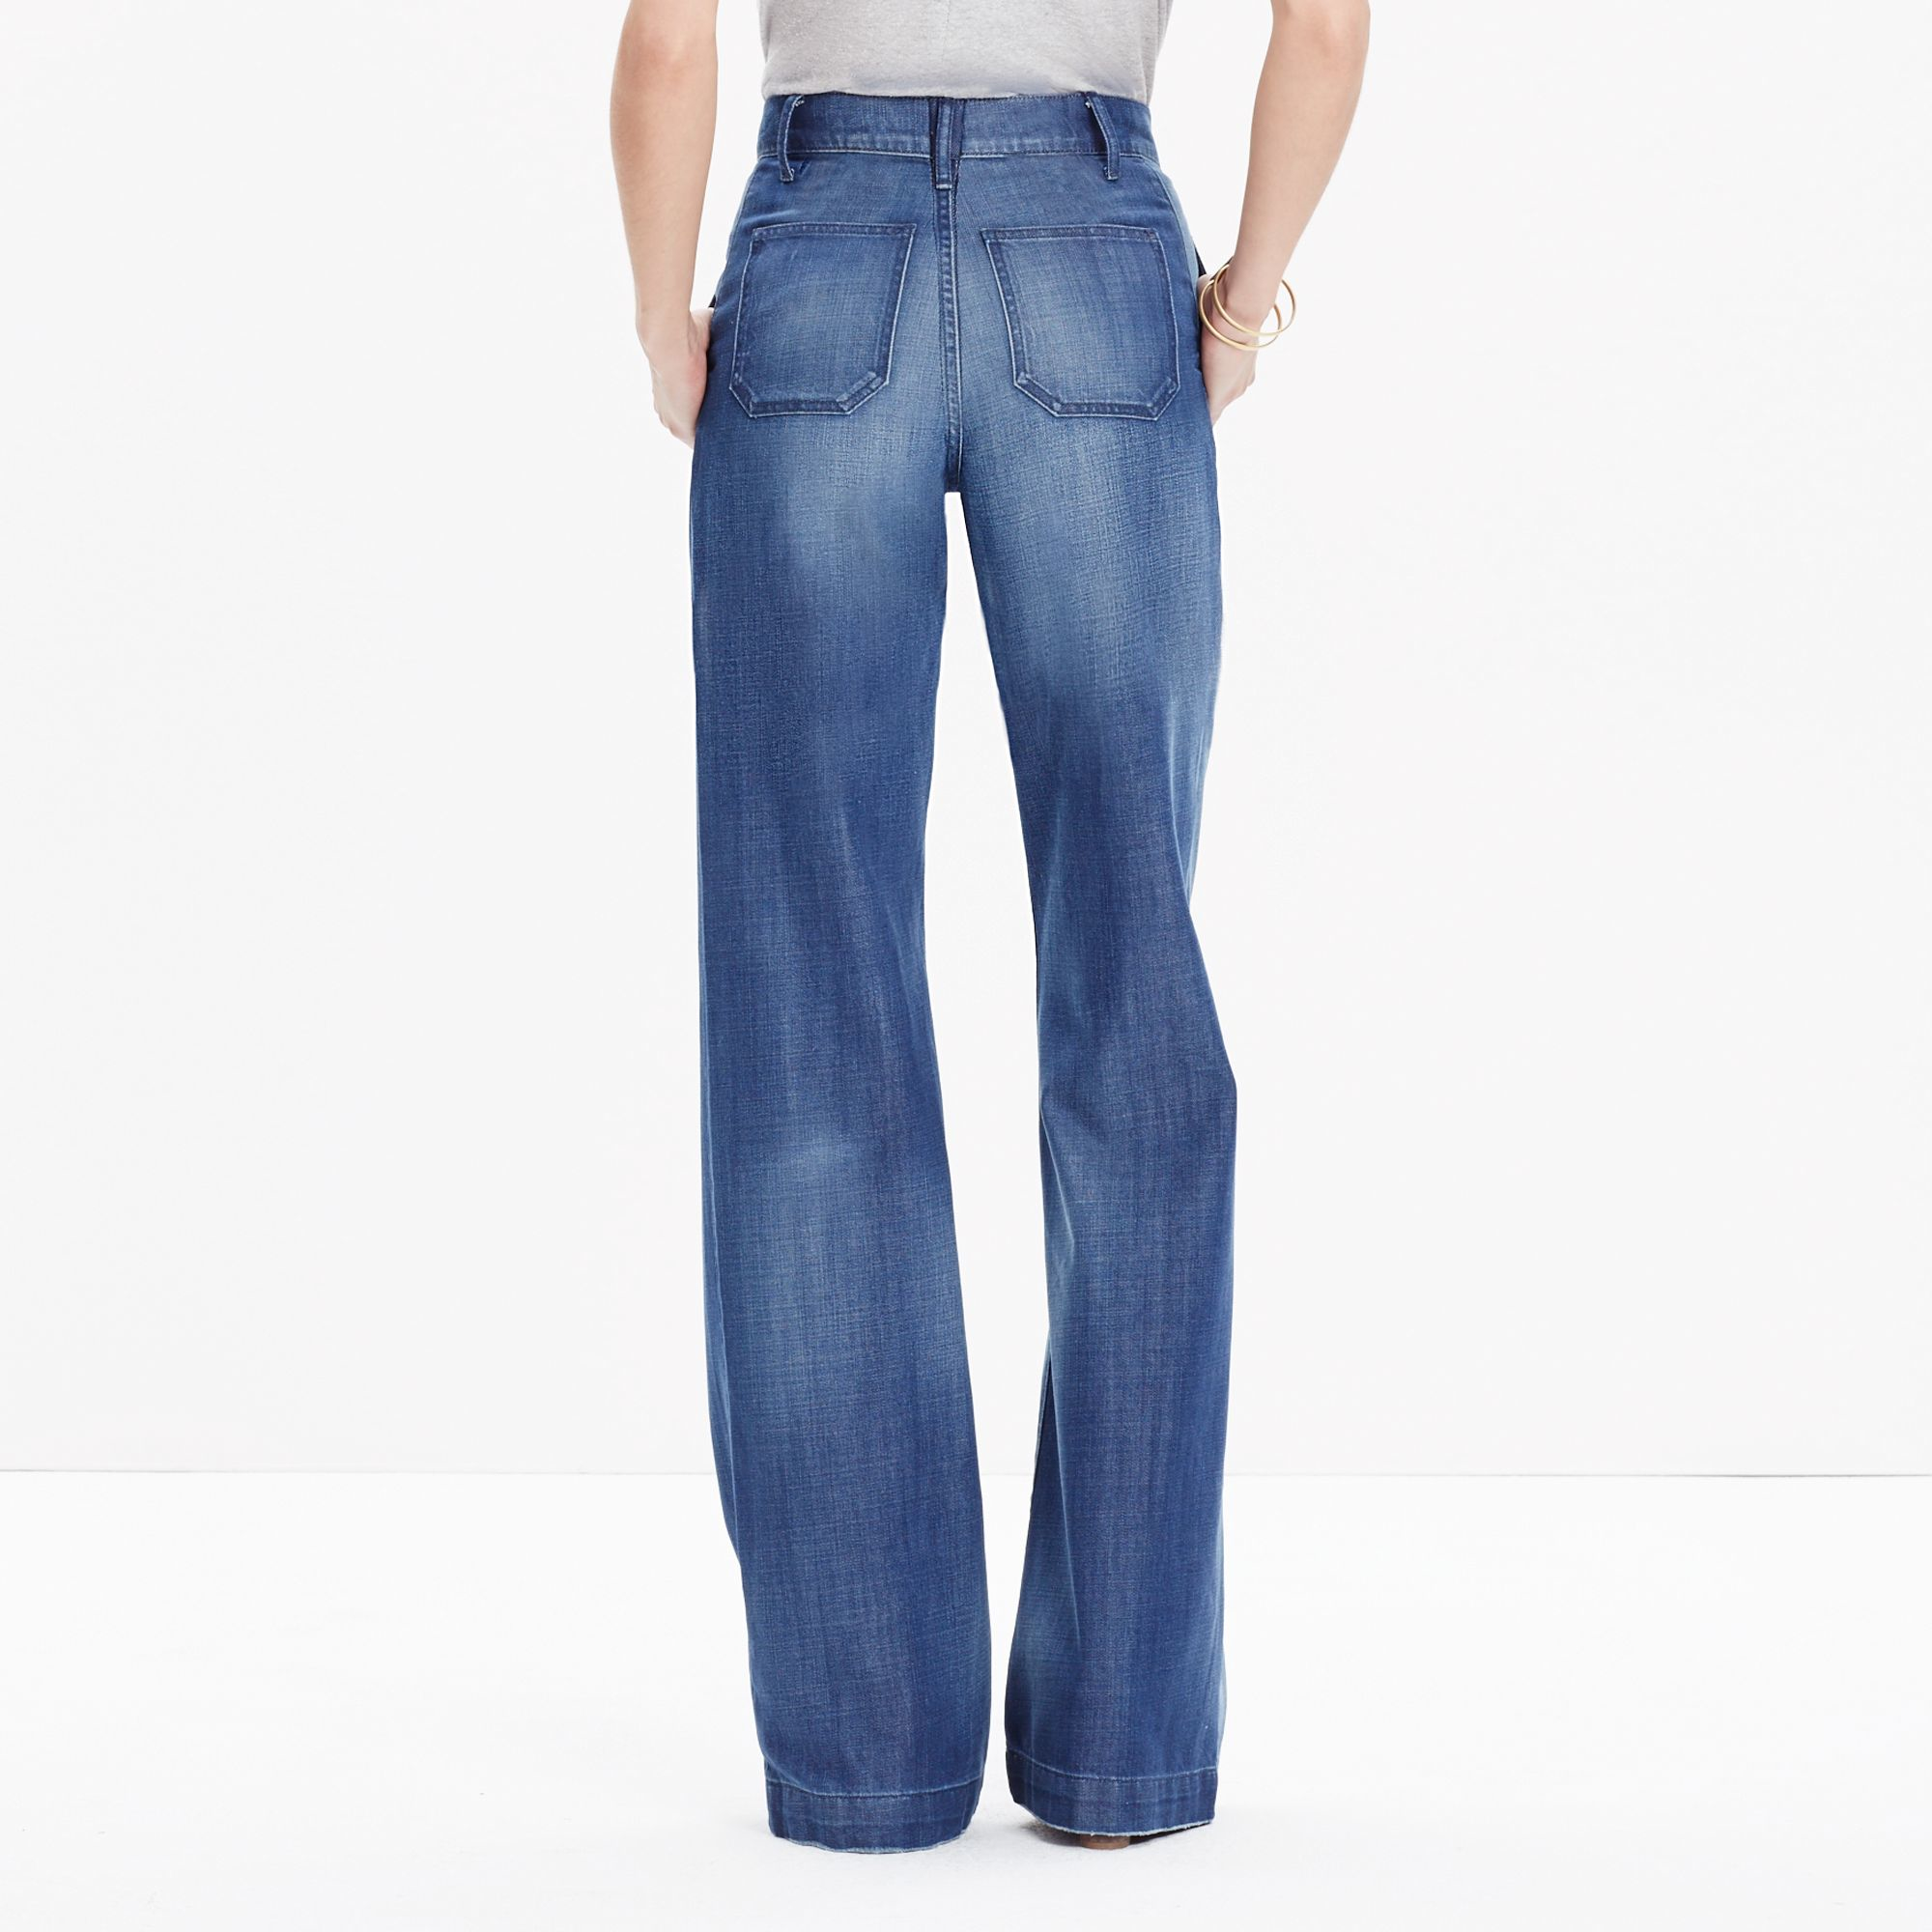 Lyst - Madewell Trouser Jeans in Blue